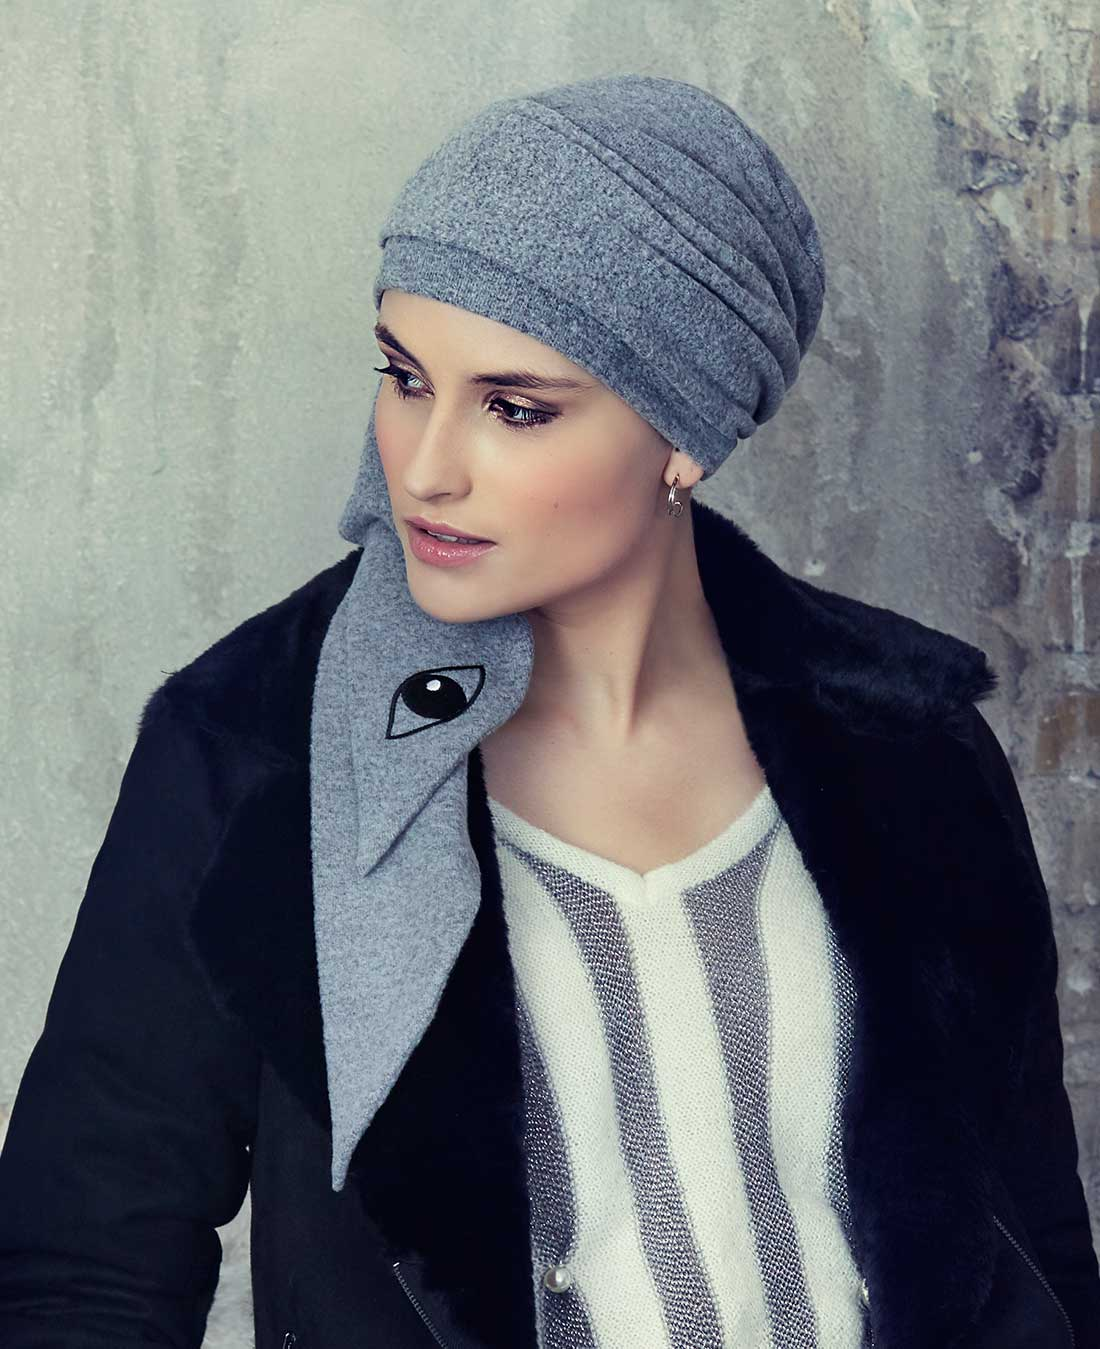 1396 - Karla V Scarf (Brushed) A/W 18